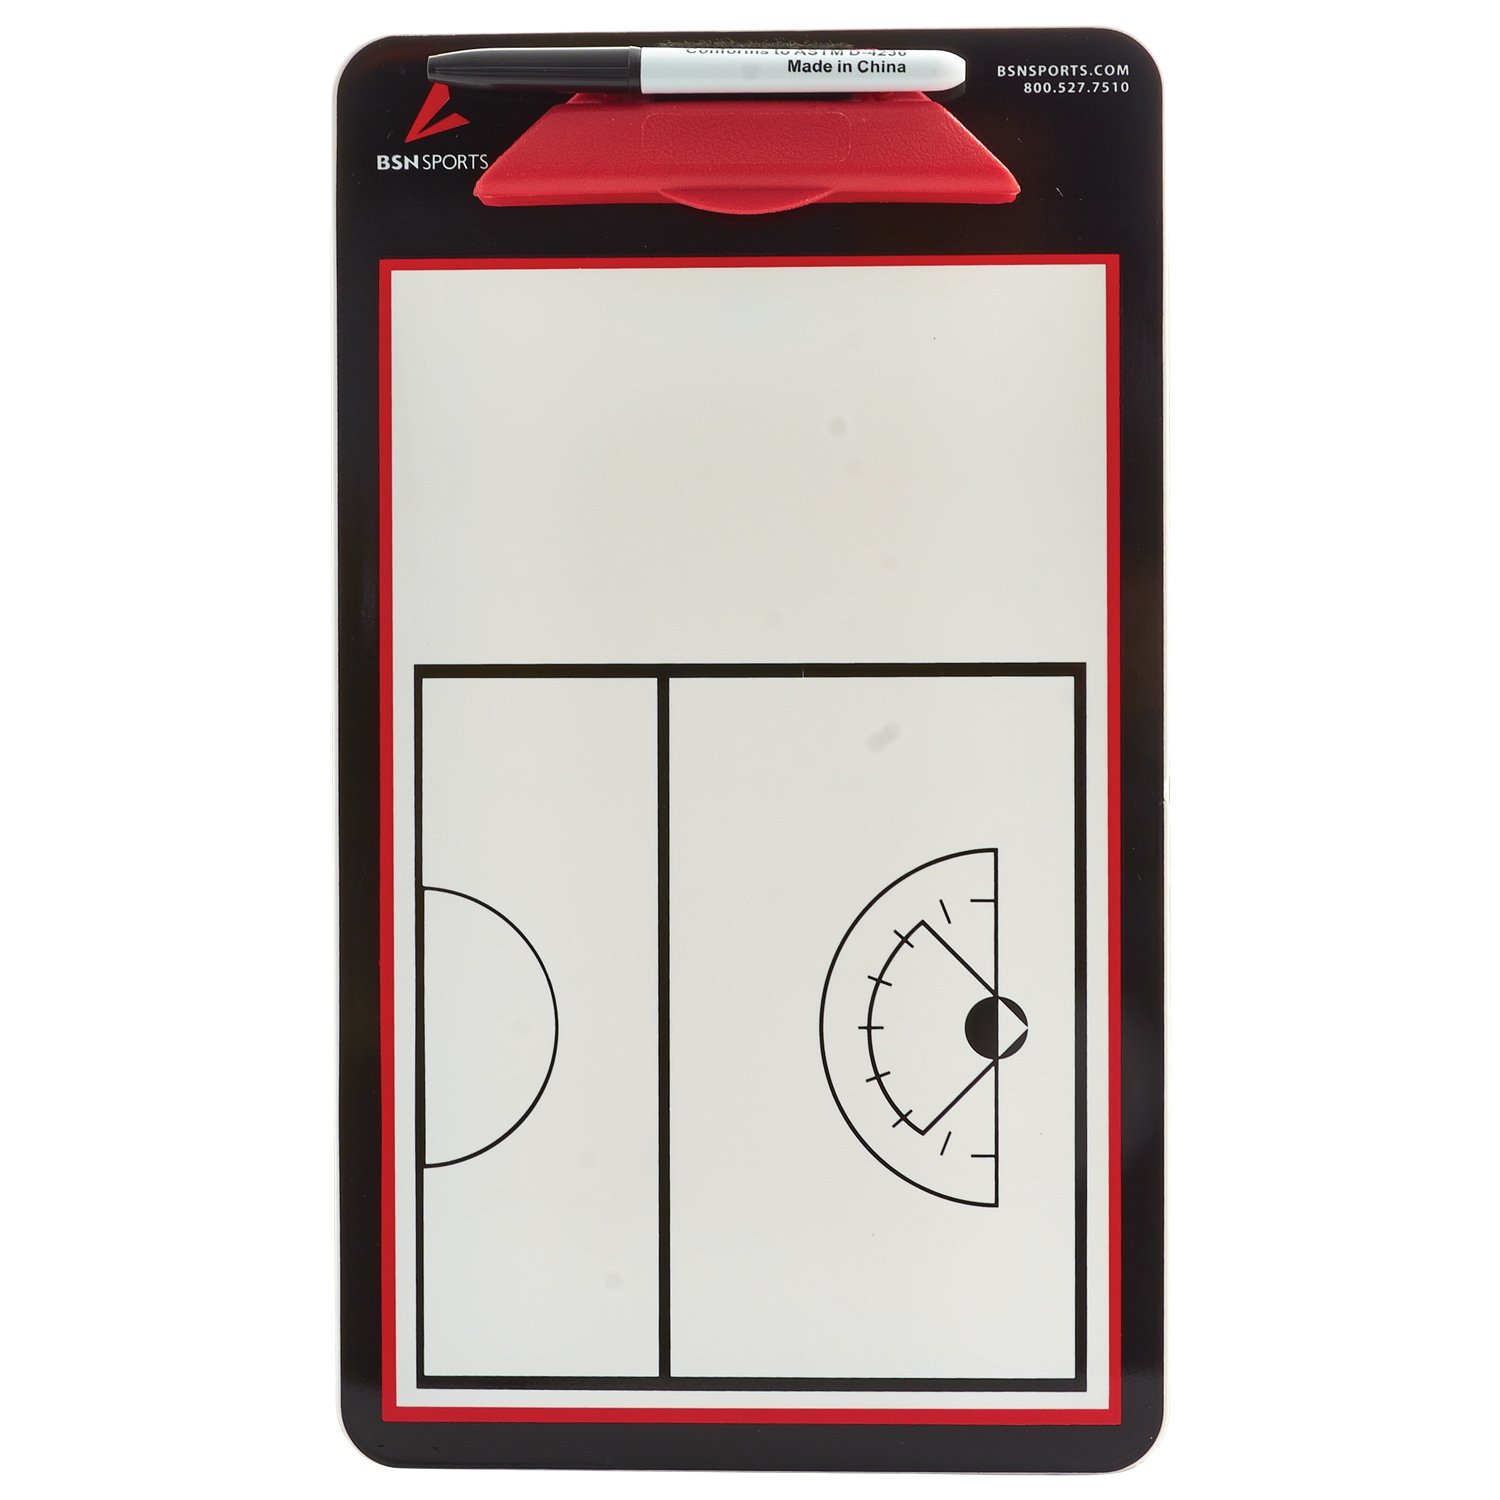 BSN Sports Women's Double Sided Lacrosse Coaching Board